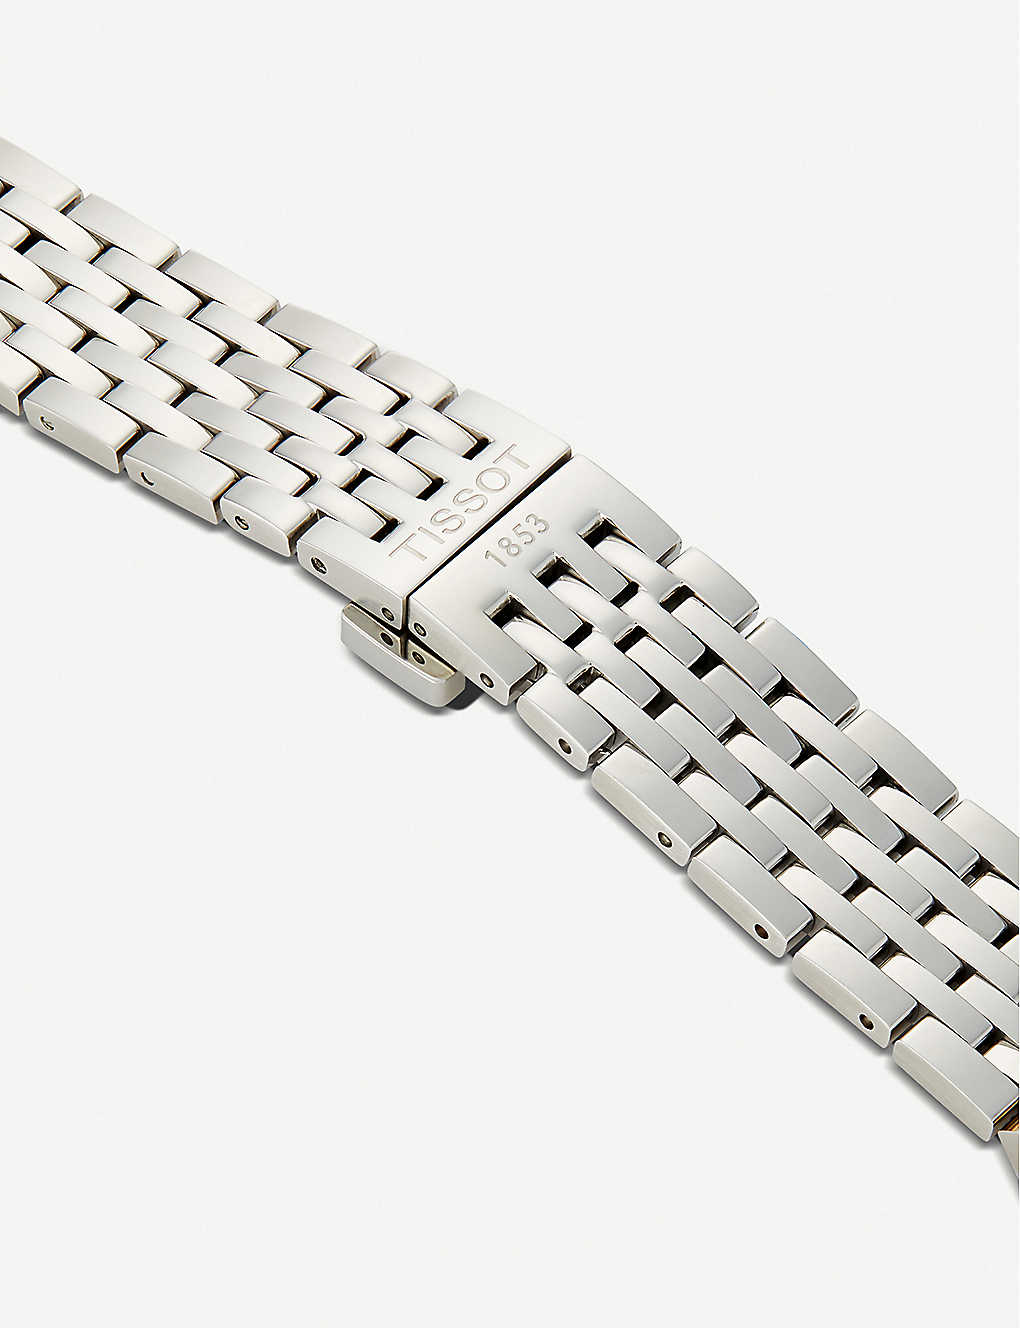 657a6eec2 TISSOT - T0064071105300 Le Locle Powermatic 80 stainless steel watch ...